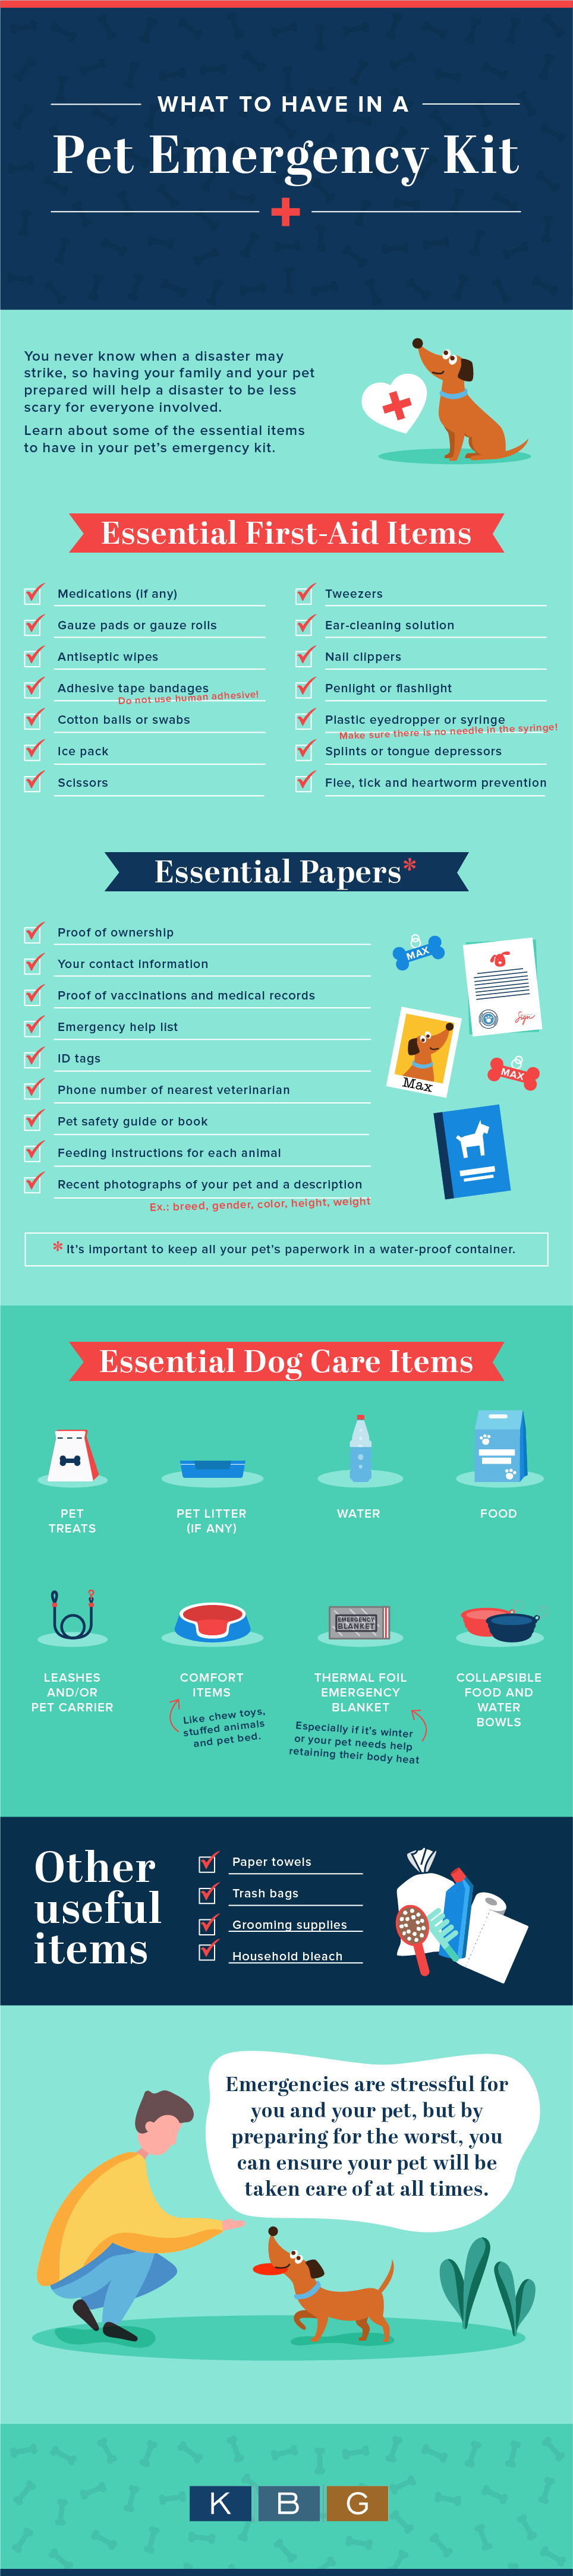 What to Have in a Pet Emergency Kit